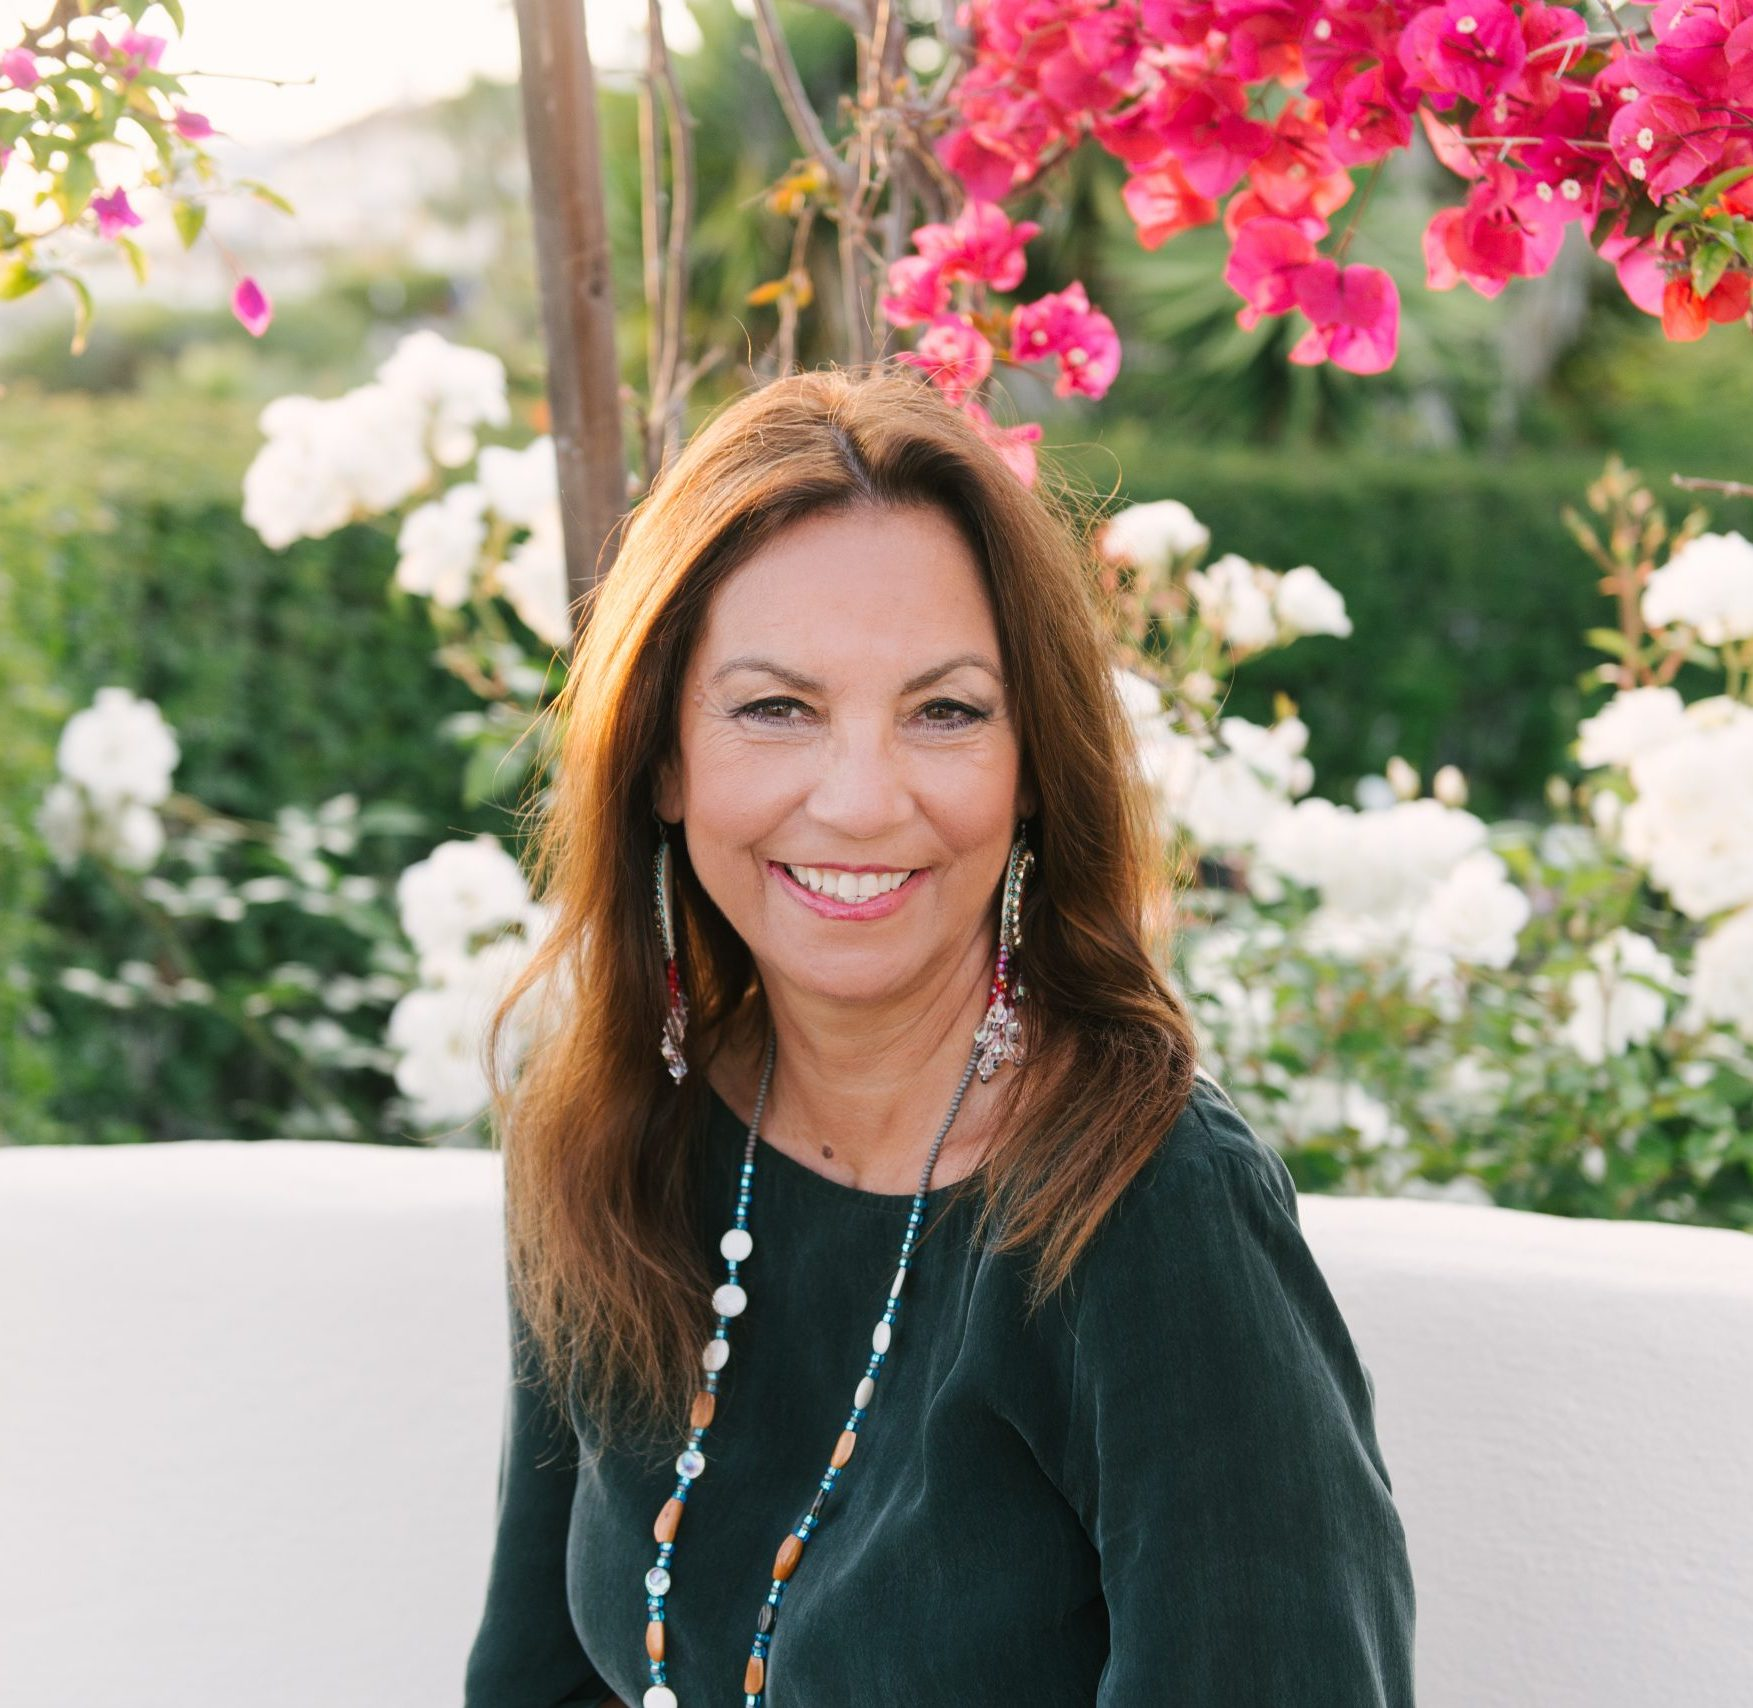 A Native-American woman with armpit length, light brown hair, smiles directly at the camera. She is wearing a dark green long sleeve shirt, a blue, white and orange beaded necklace and green, red, purple and pink pendant earrings. She is sitting on a white bench in front of a tree with pink and white flowers and some bushes.